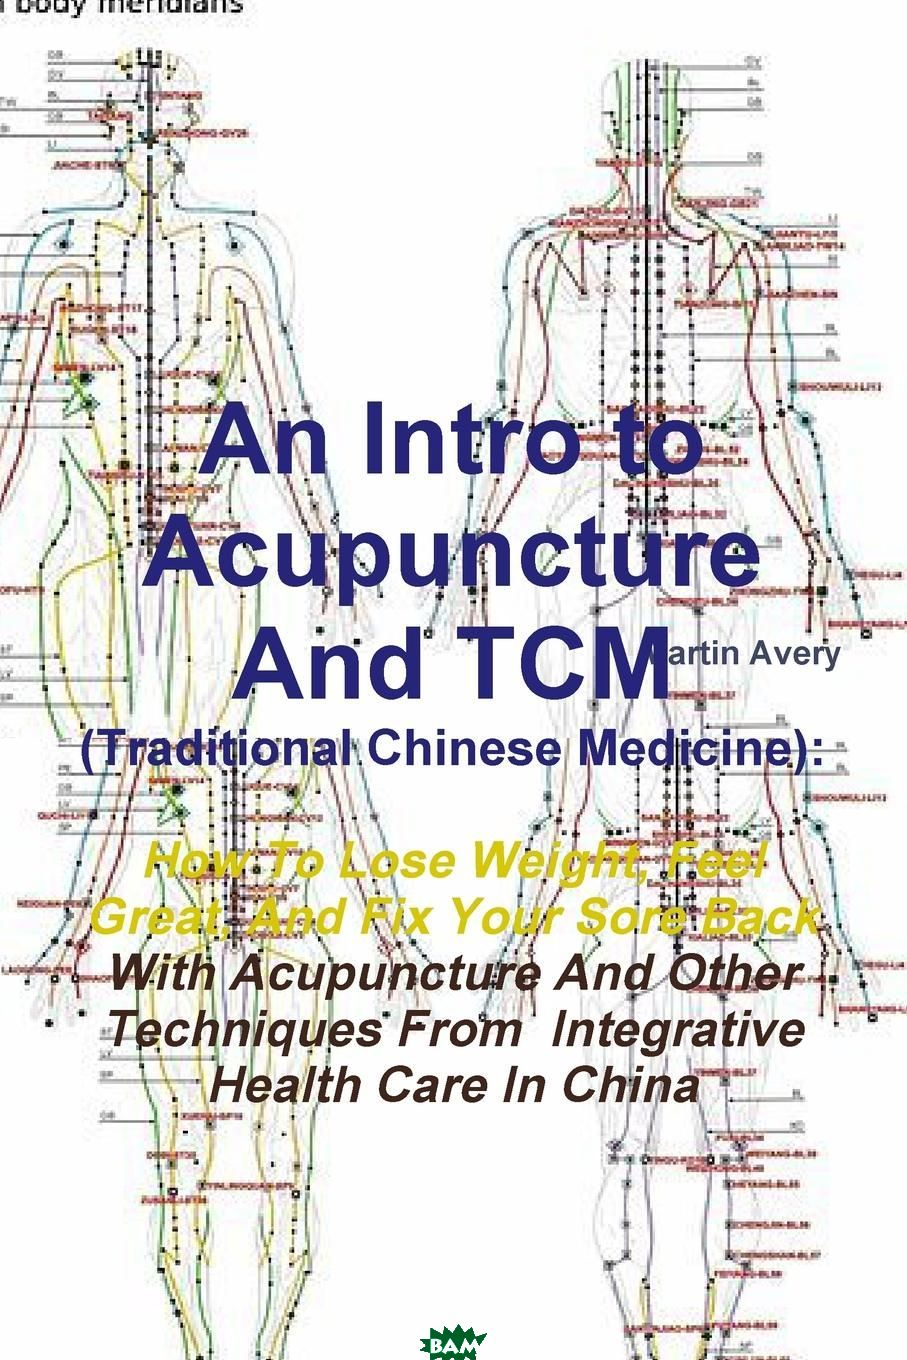 Купить An Intro to Acupuncture and Tcm (Traditional Chinese Medicine). How to Lose Weight, Feel Great, and Fix Your Sore Back with Acupuncture and Other Tec, Martin Avery, 9781304920638